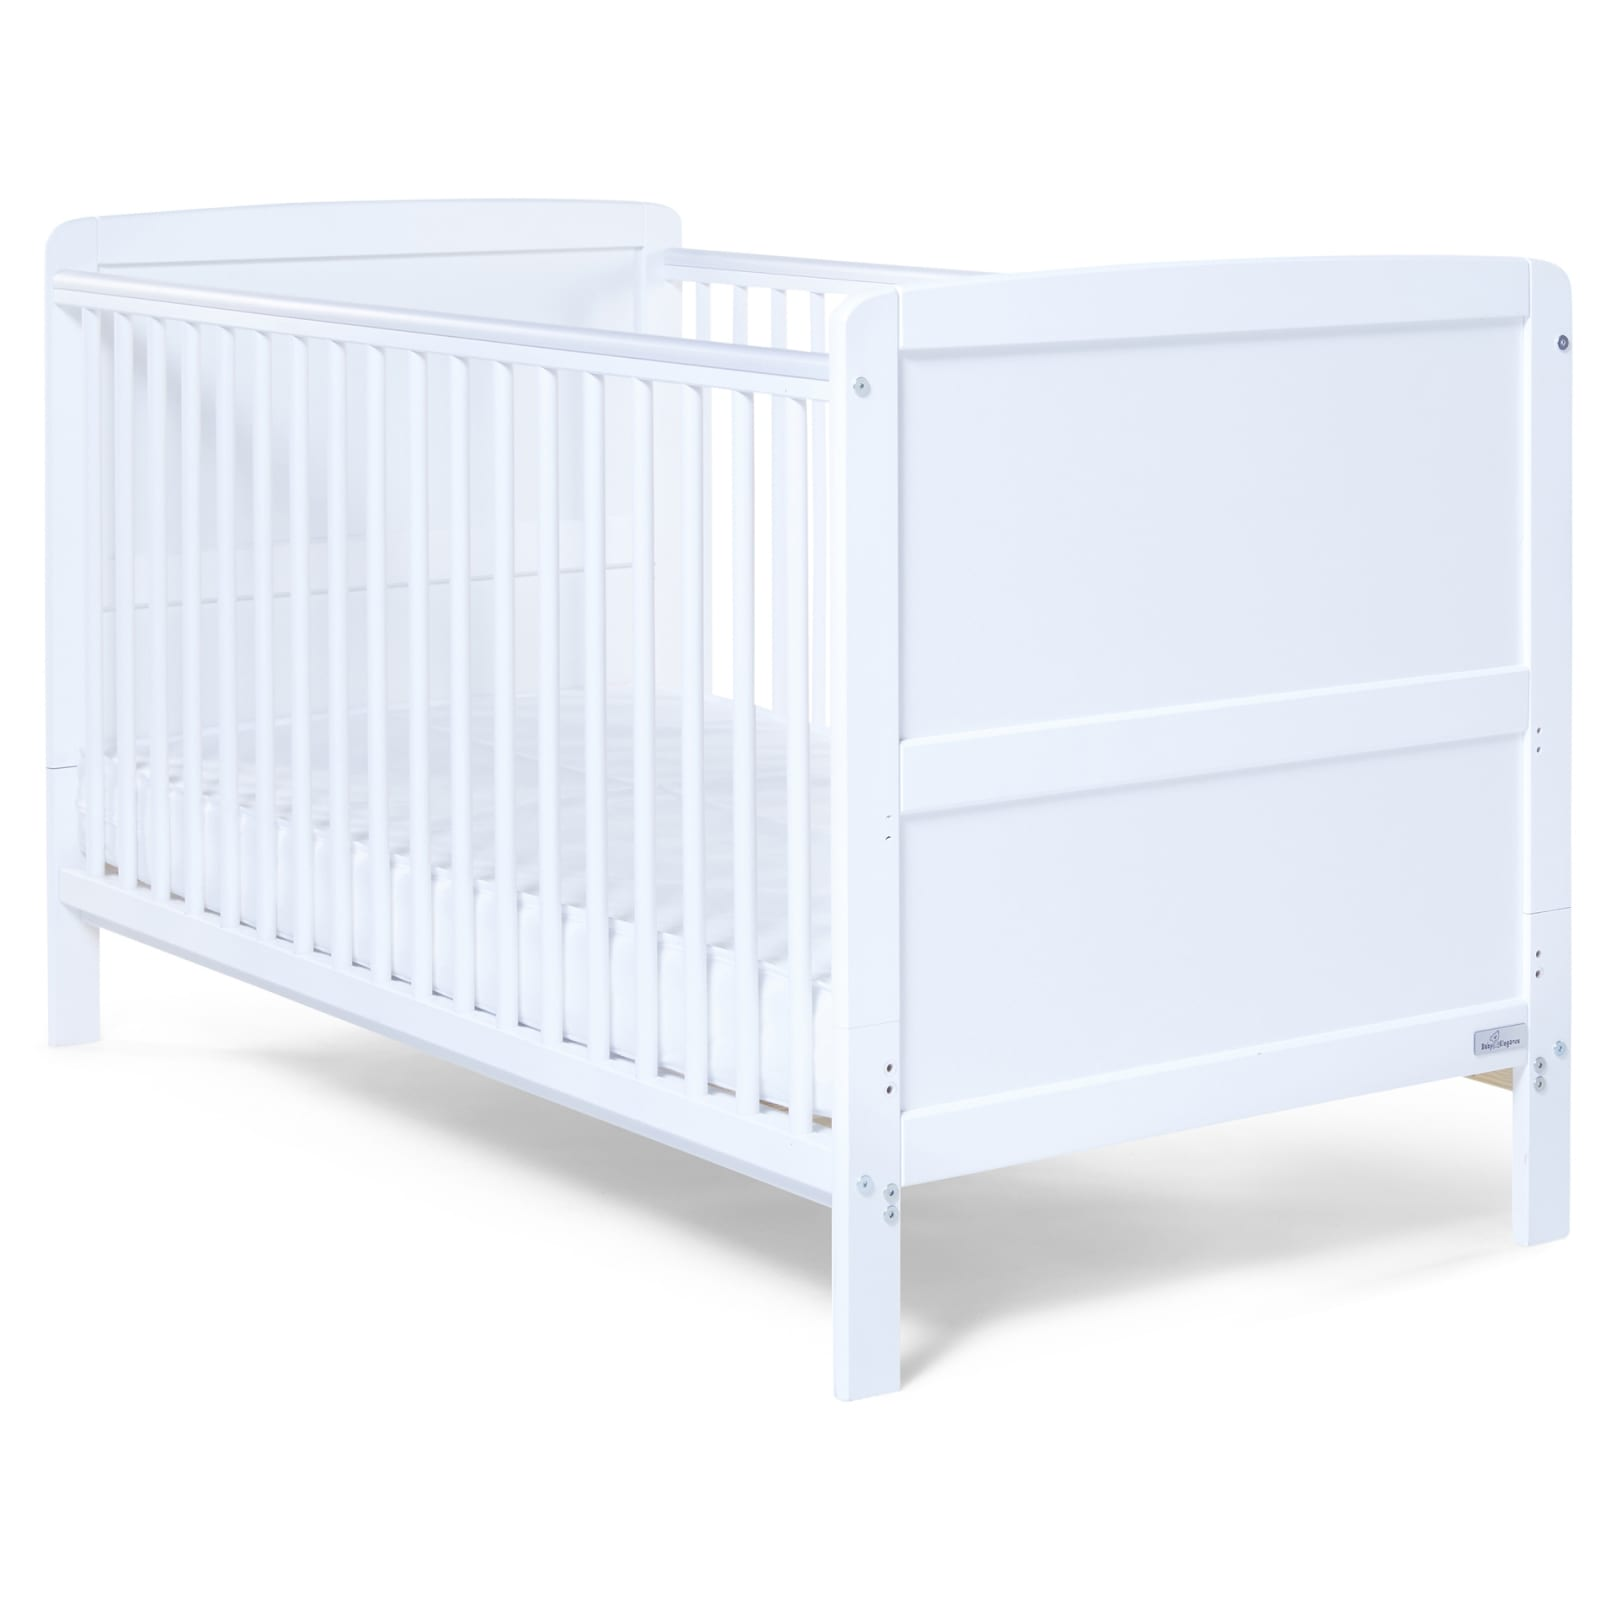 Travis Cot Bed White - Happy Baby